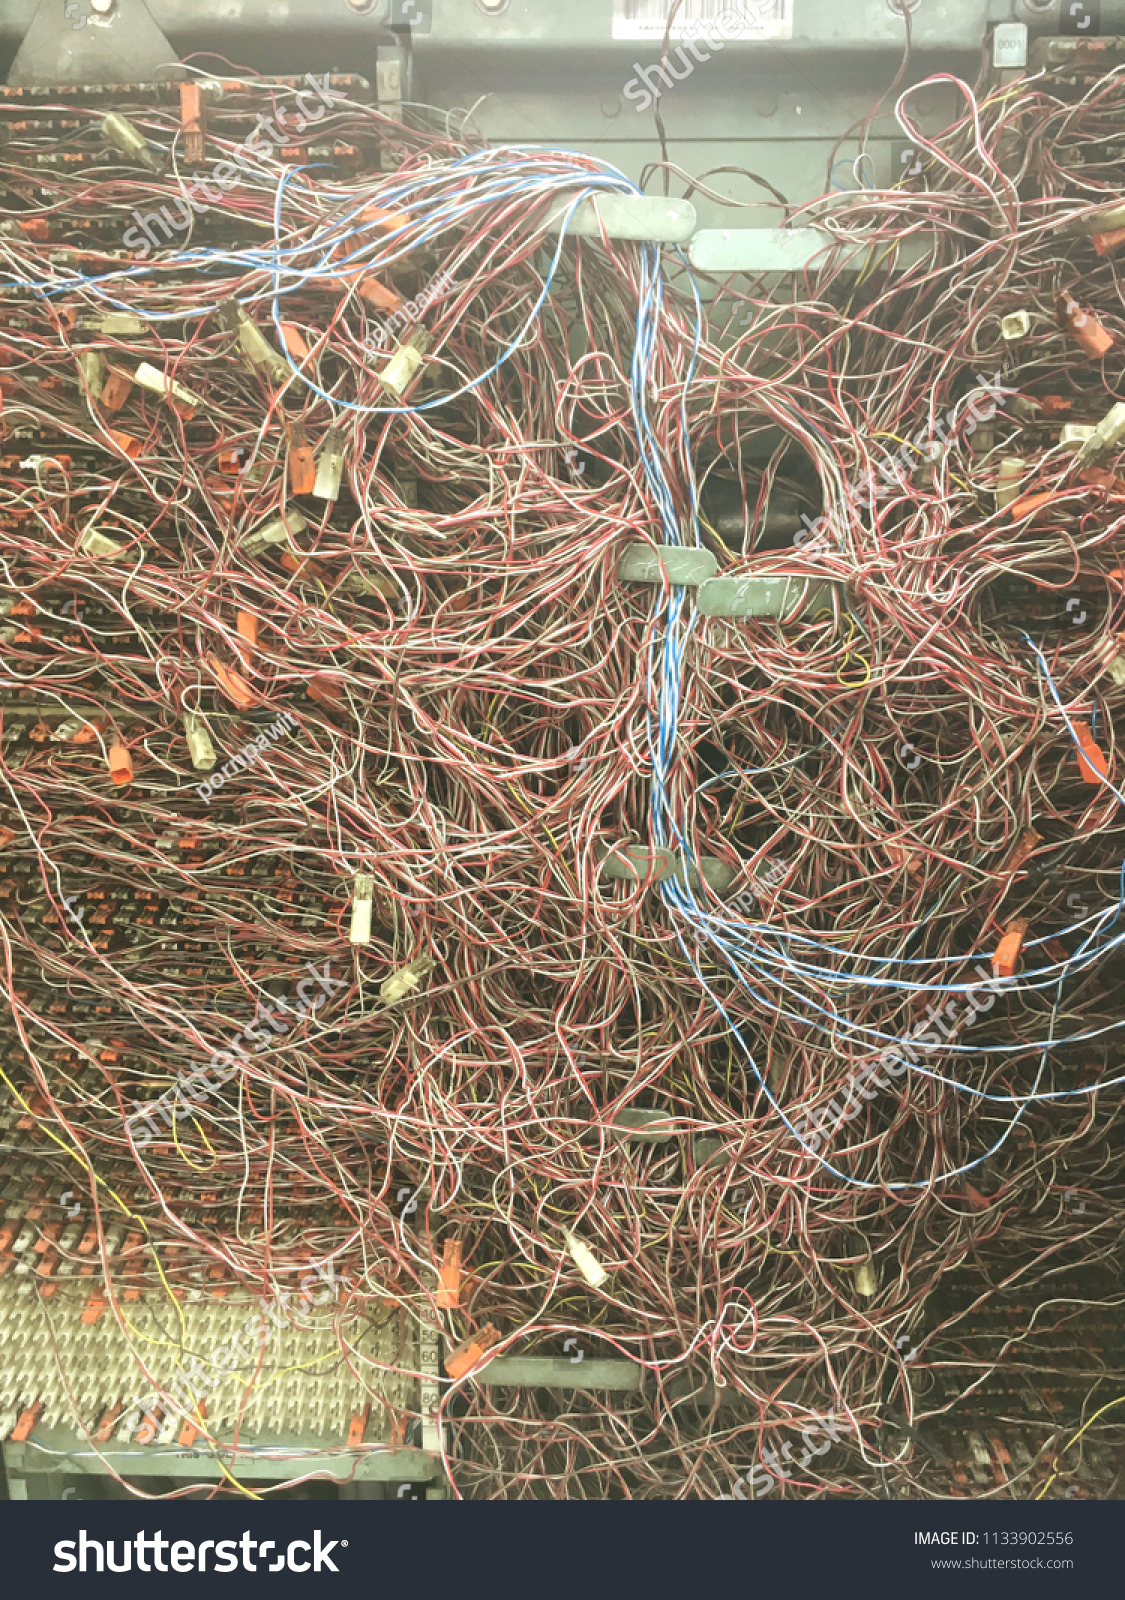 hight resolution of the messy telephone wire in switchboard panel